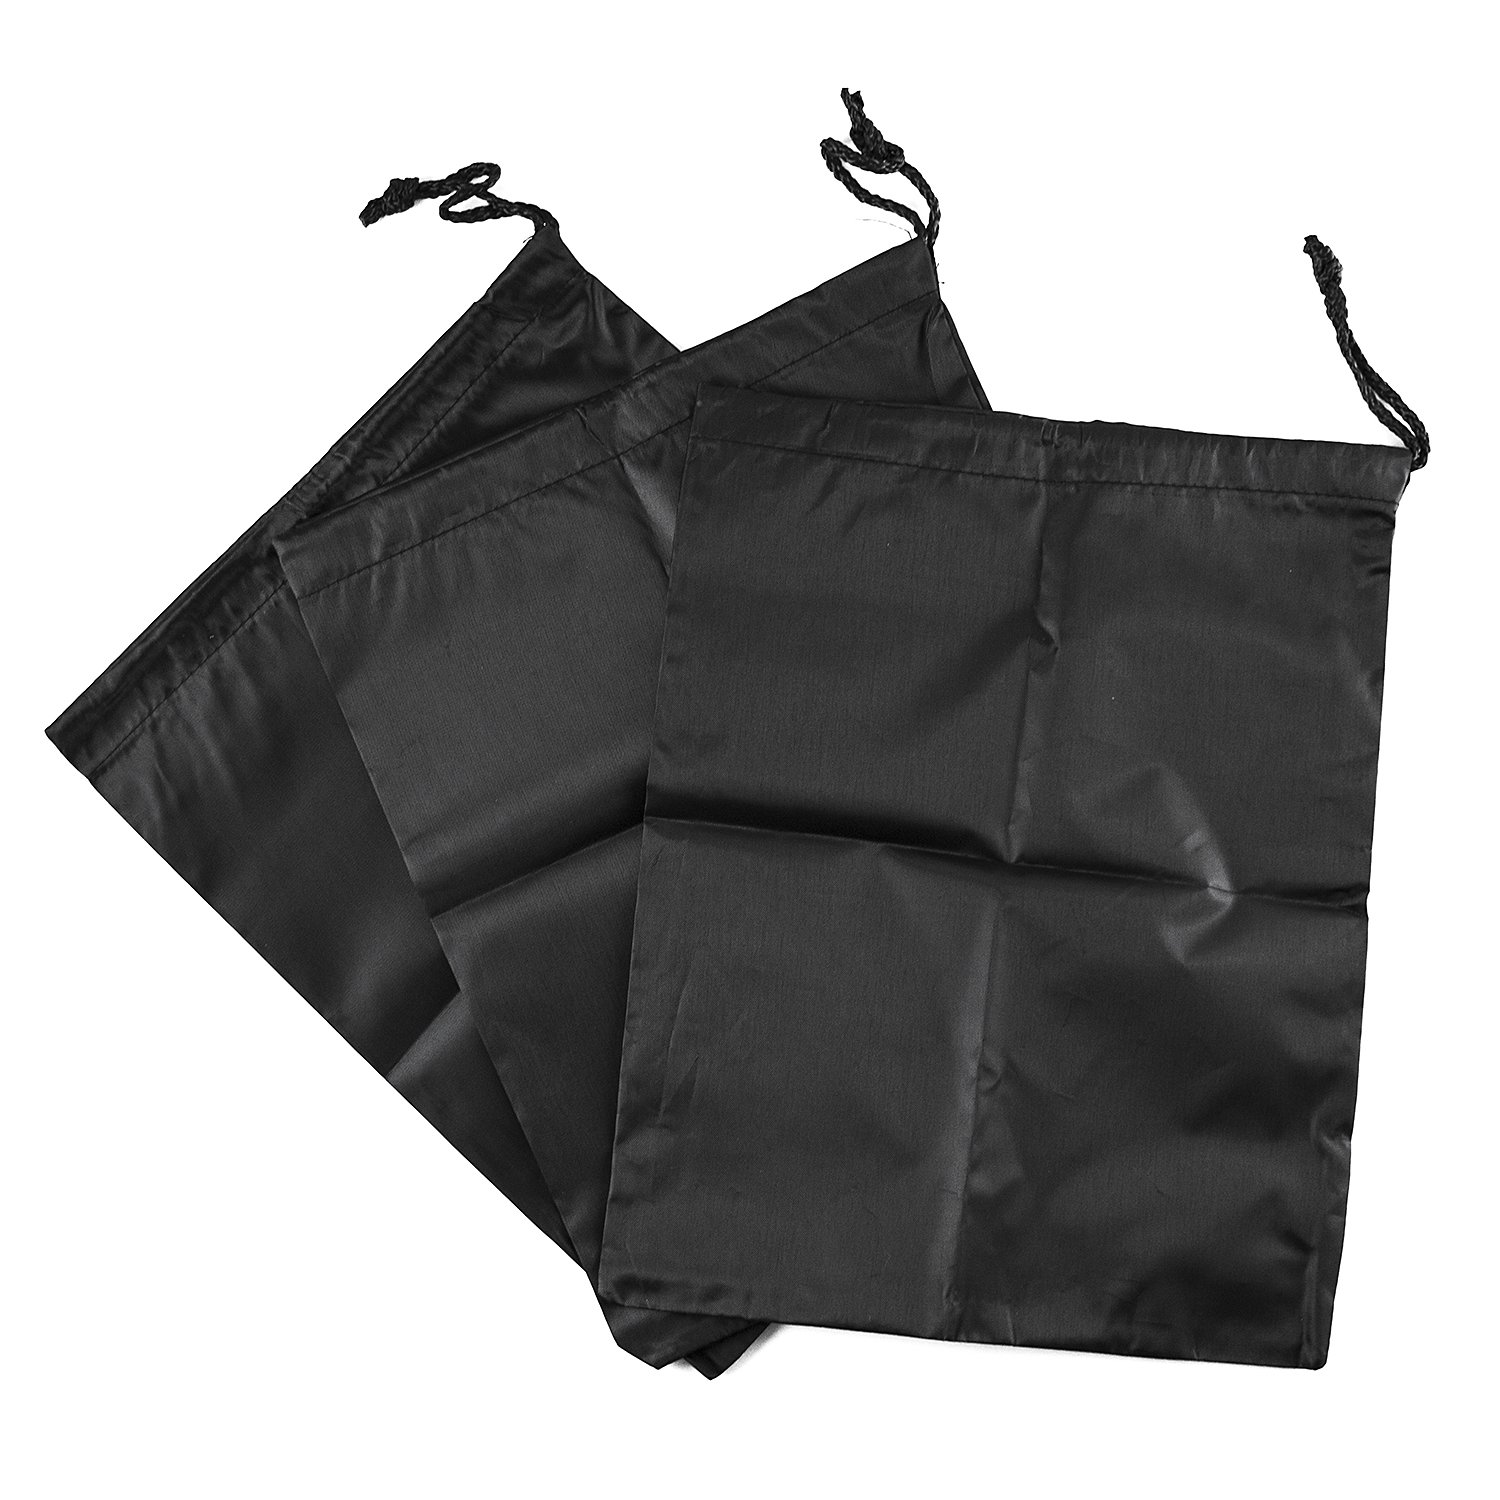 Waterproof Nylon Dust-Proof Travel Bags with Drawstring Closure for Shoes Footwear Protection, Space Saving, Closet Home Organization Gift 15'' x 12'' (3 Pack) by Super Z Outlet (Image #5)